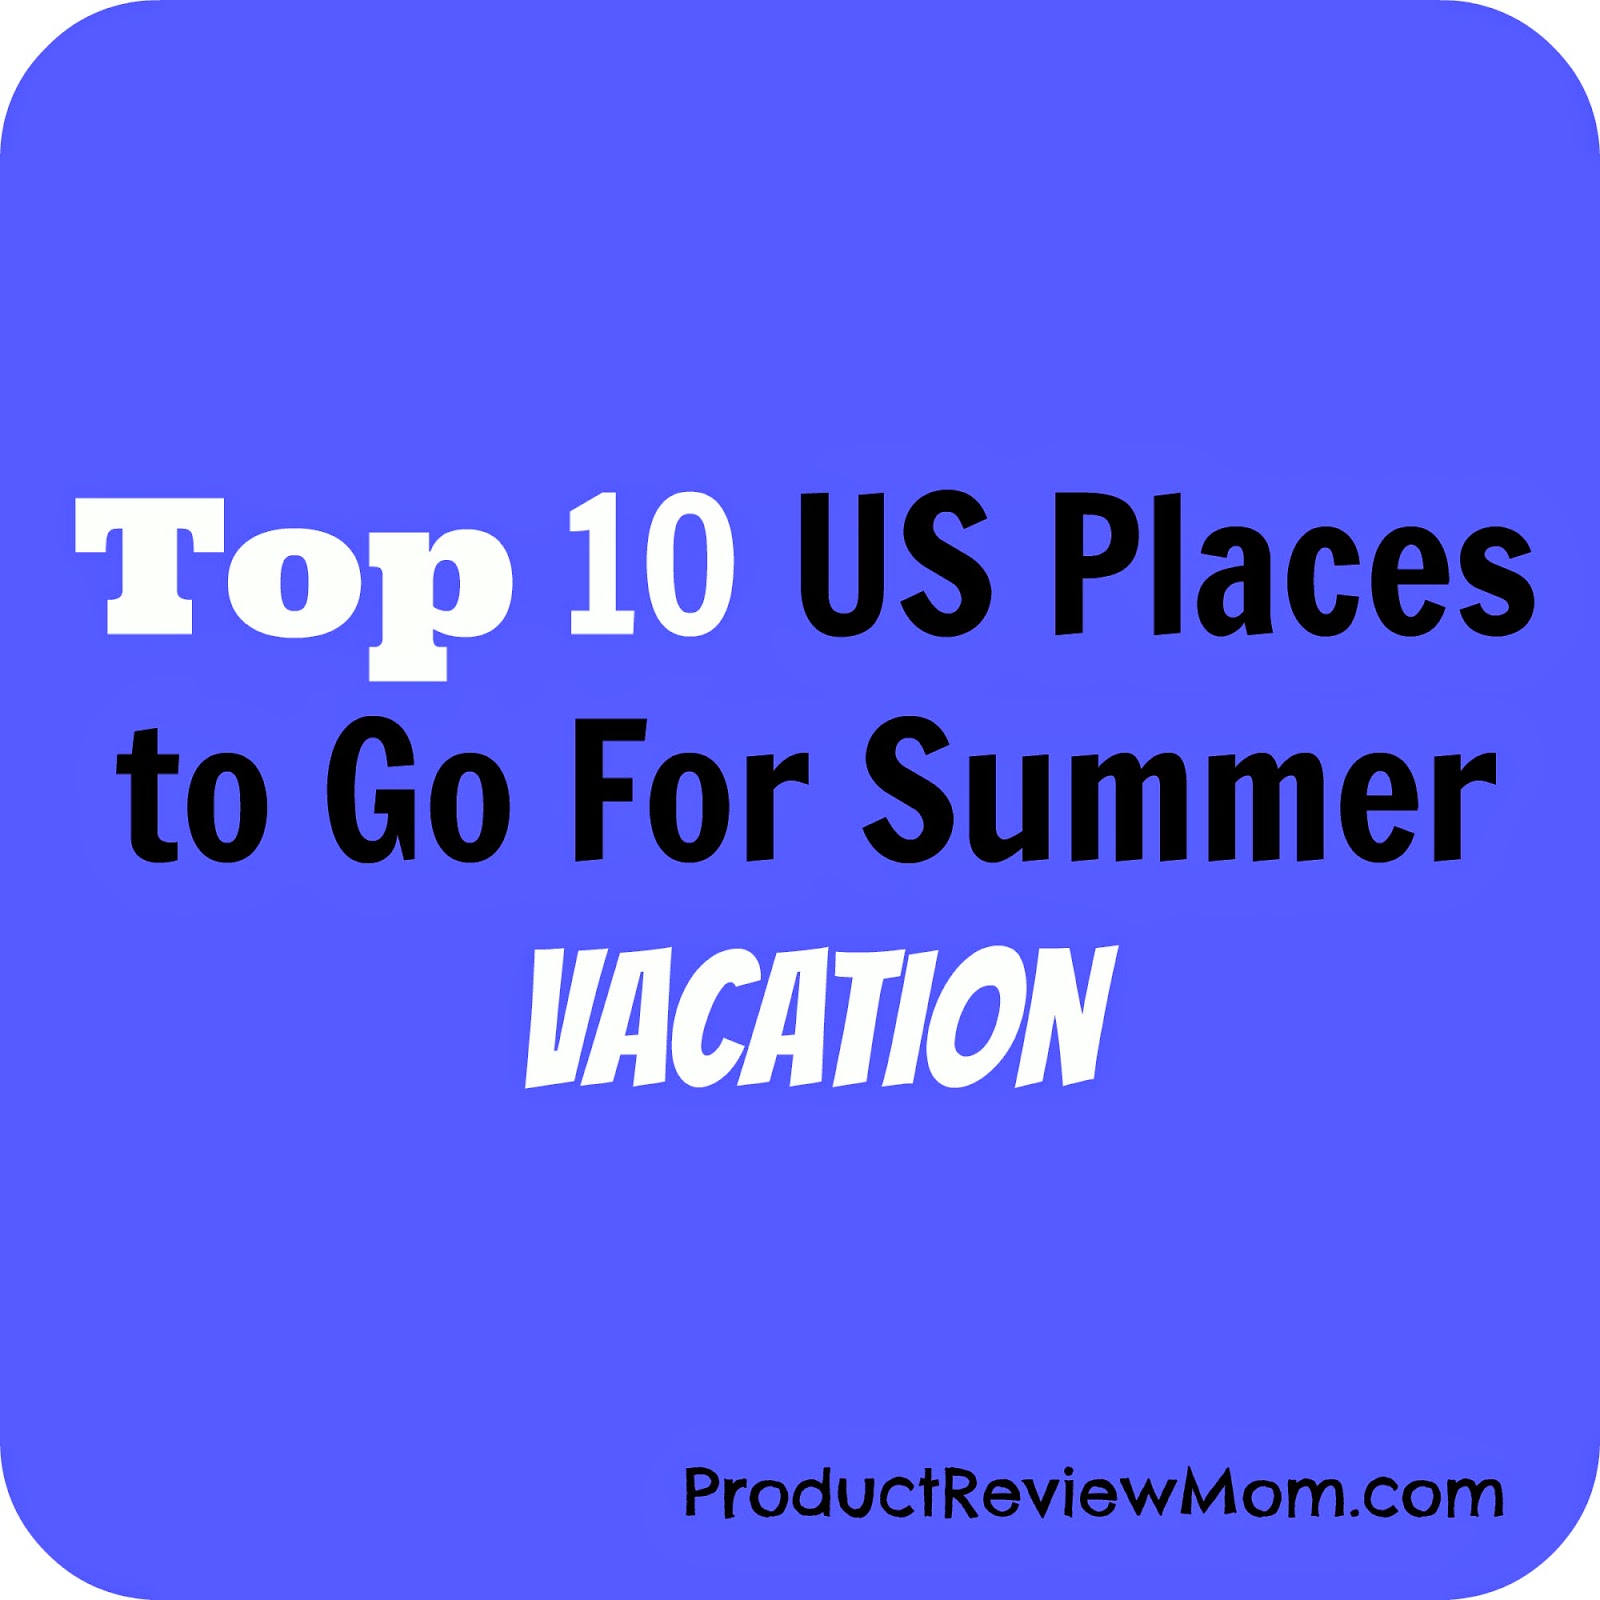 Top 10 US Places to Go For Summer Vacation (Summer Blog Series) via ProductReviewMom.com